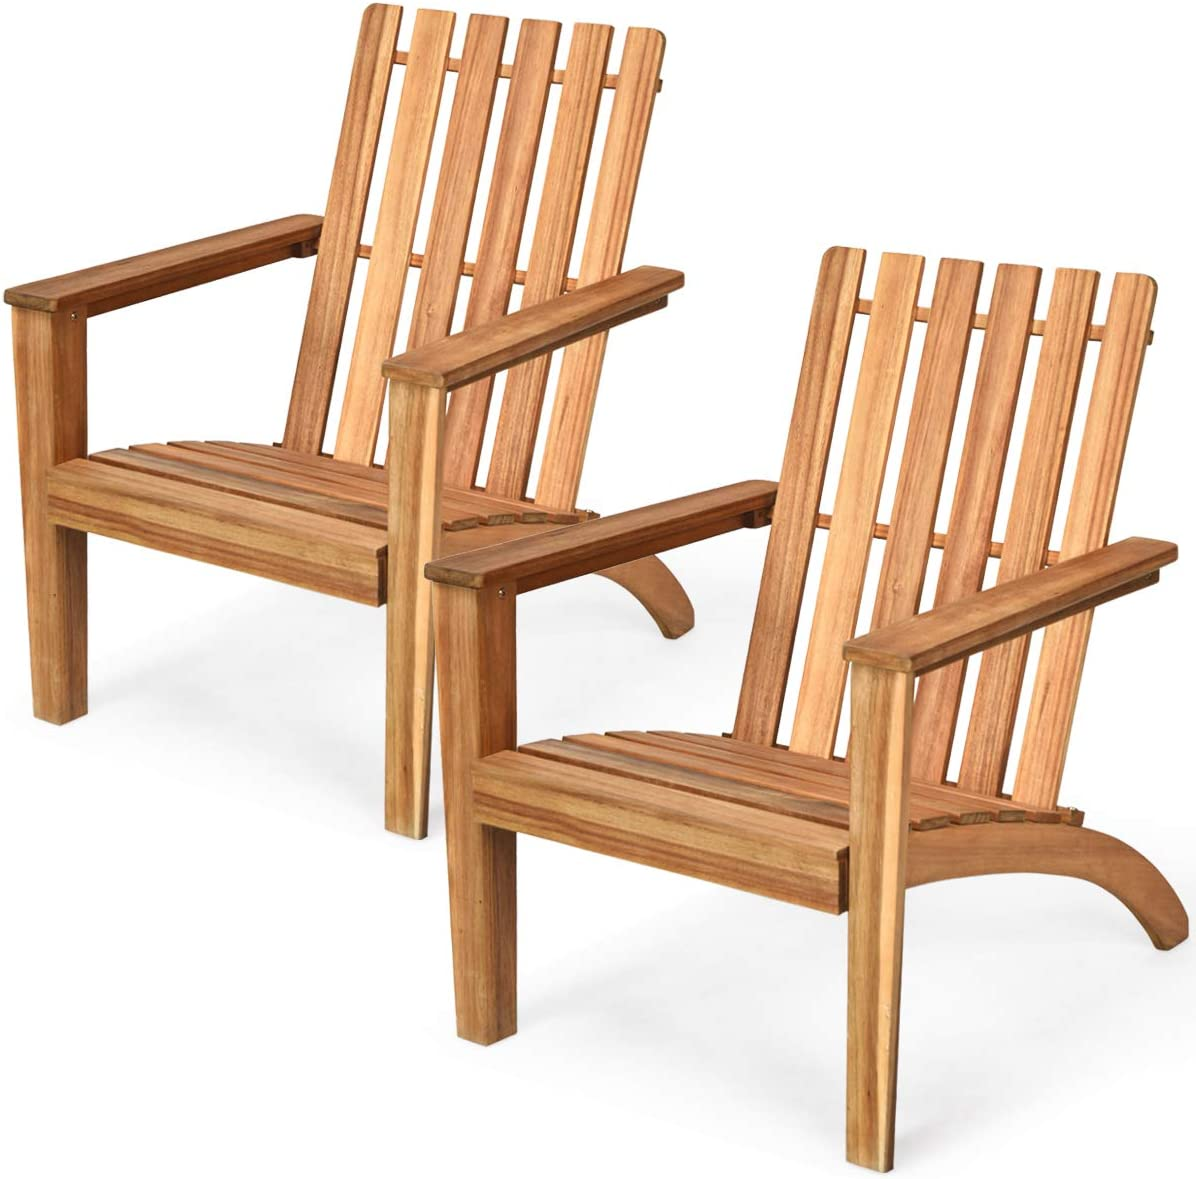 Giantex Fixed price for sale Max 70% OFF Wooden Adirondack Chair Outdoor W Ergonomic Design